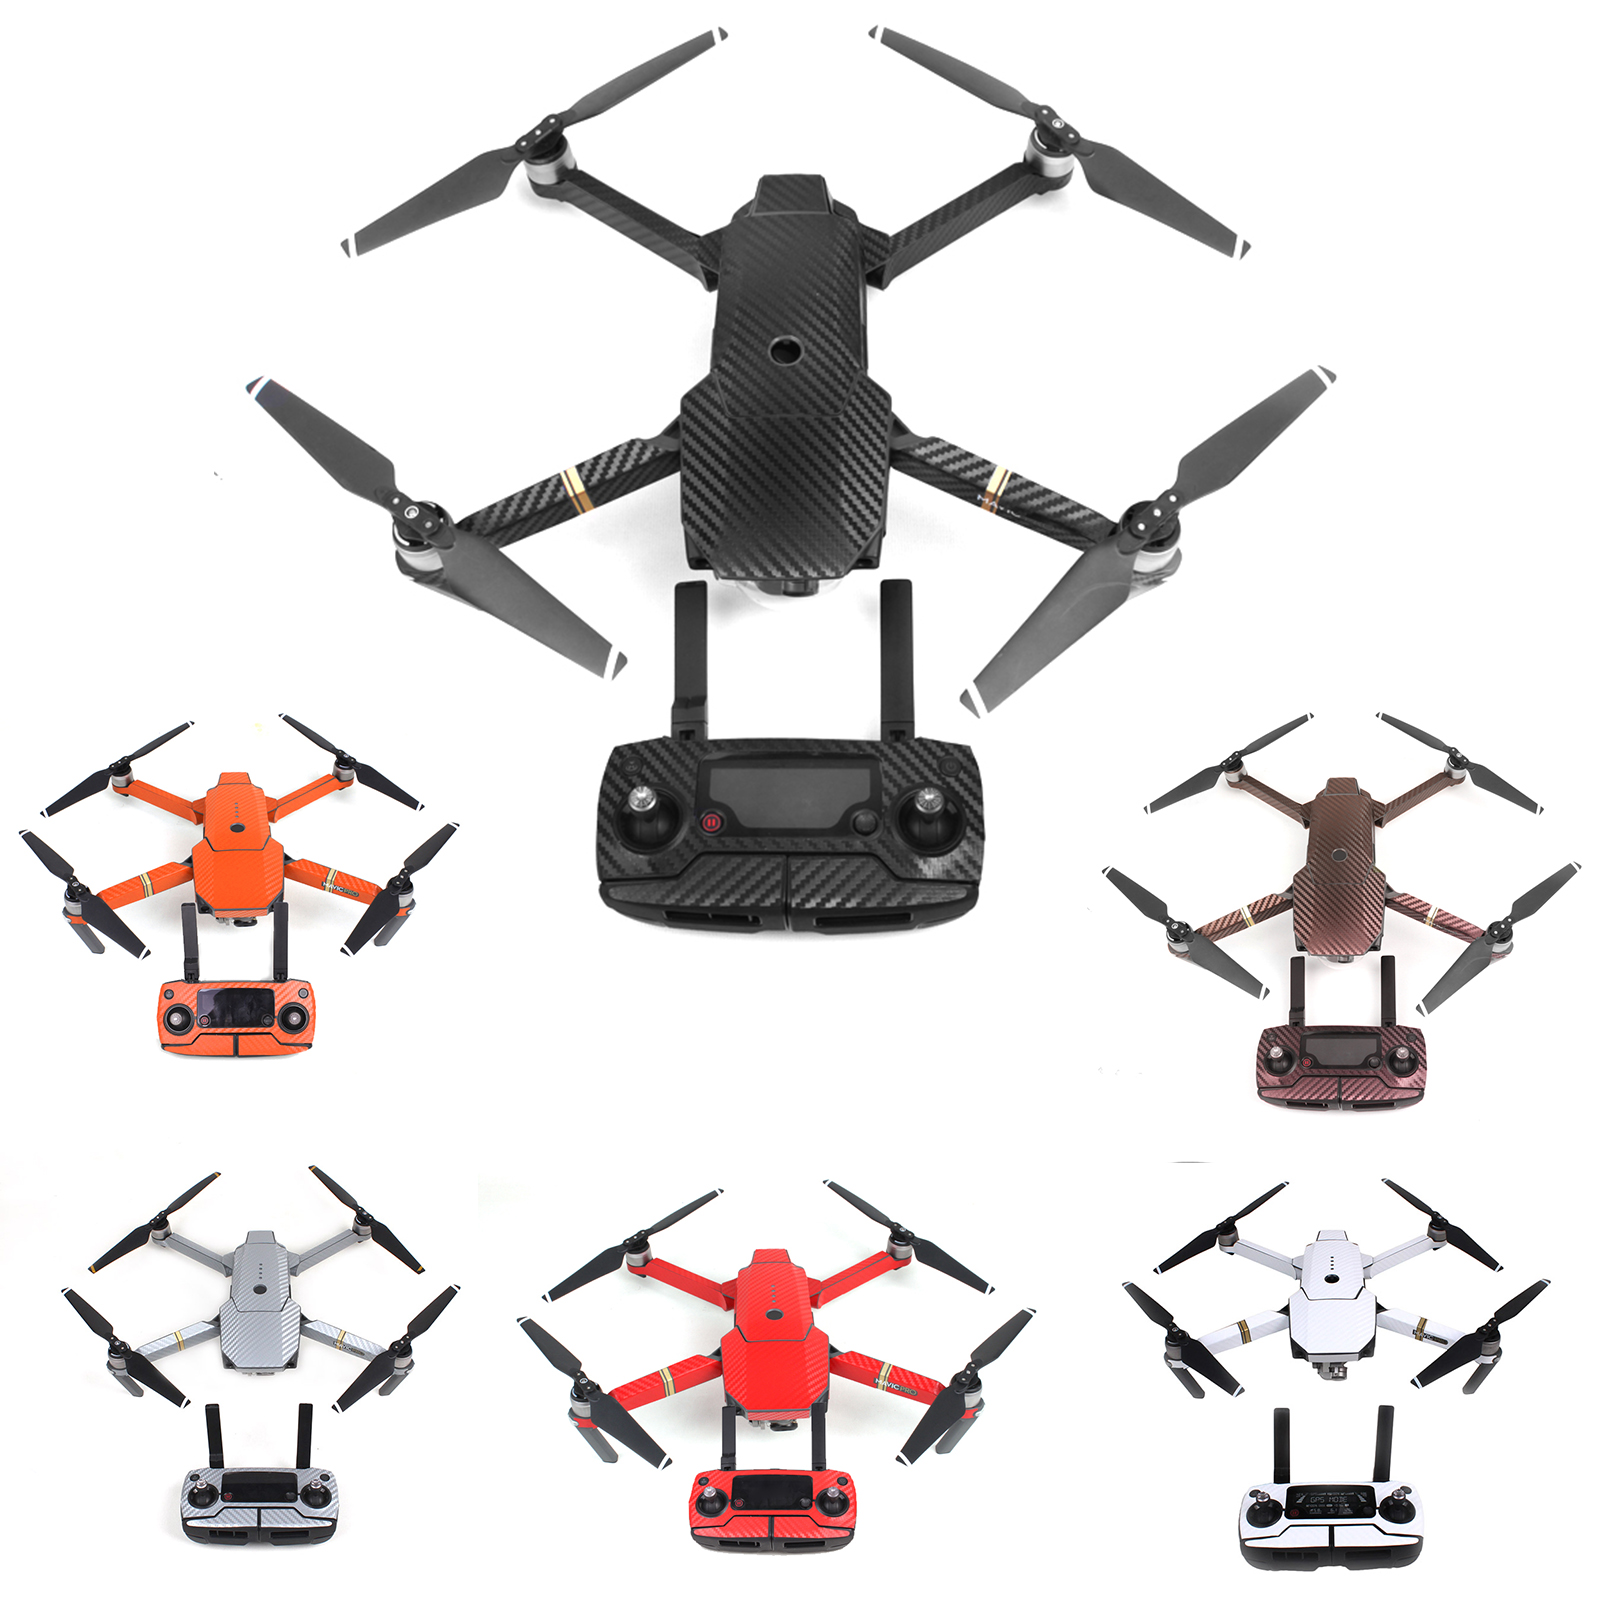 Waterproof Carbon Graphic Decals Skin Full Wrap Drone Body+Remote Control+Extra Batteries Arm Stickers For DJI MAVIC PRO Drone